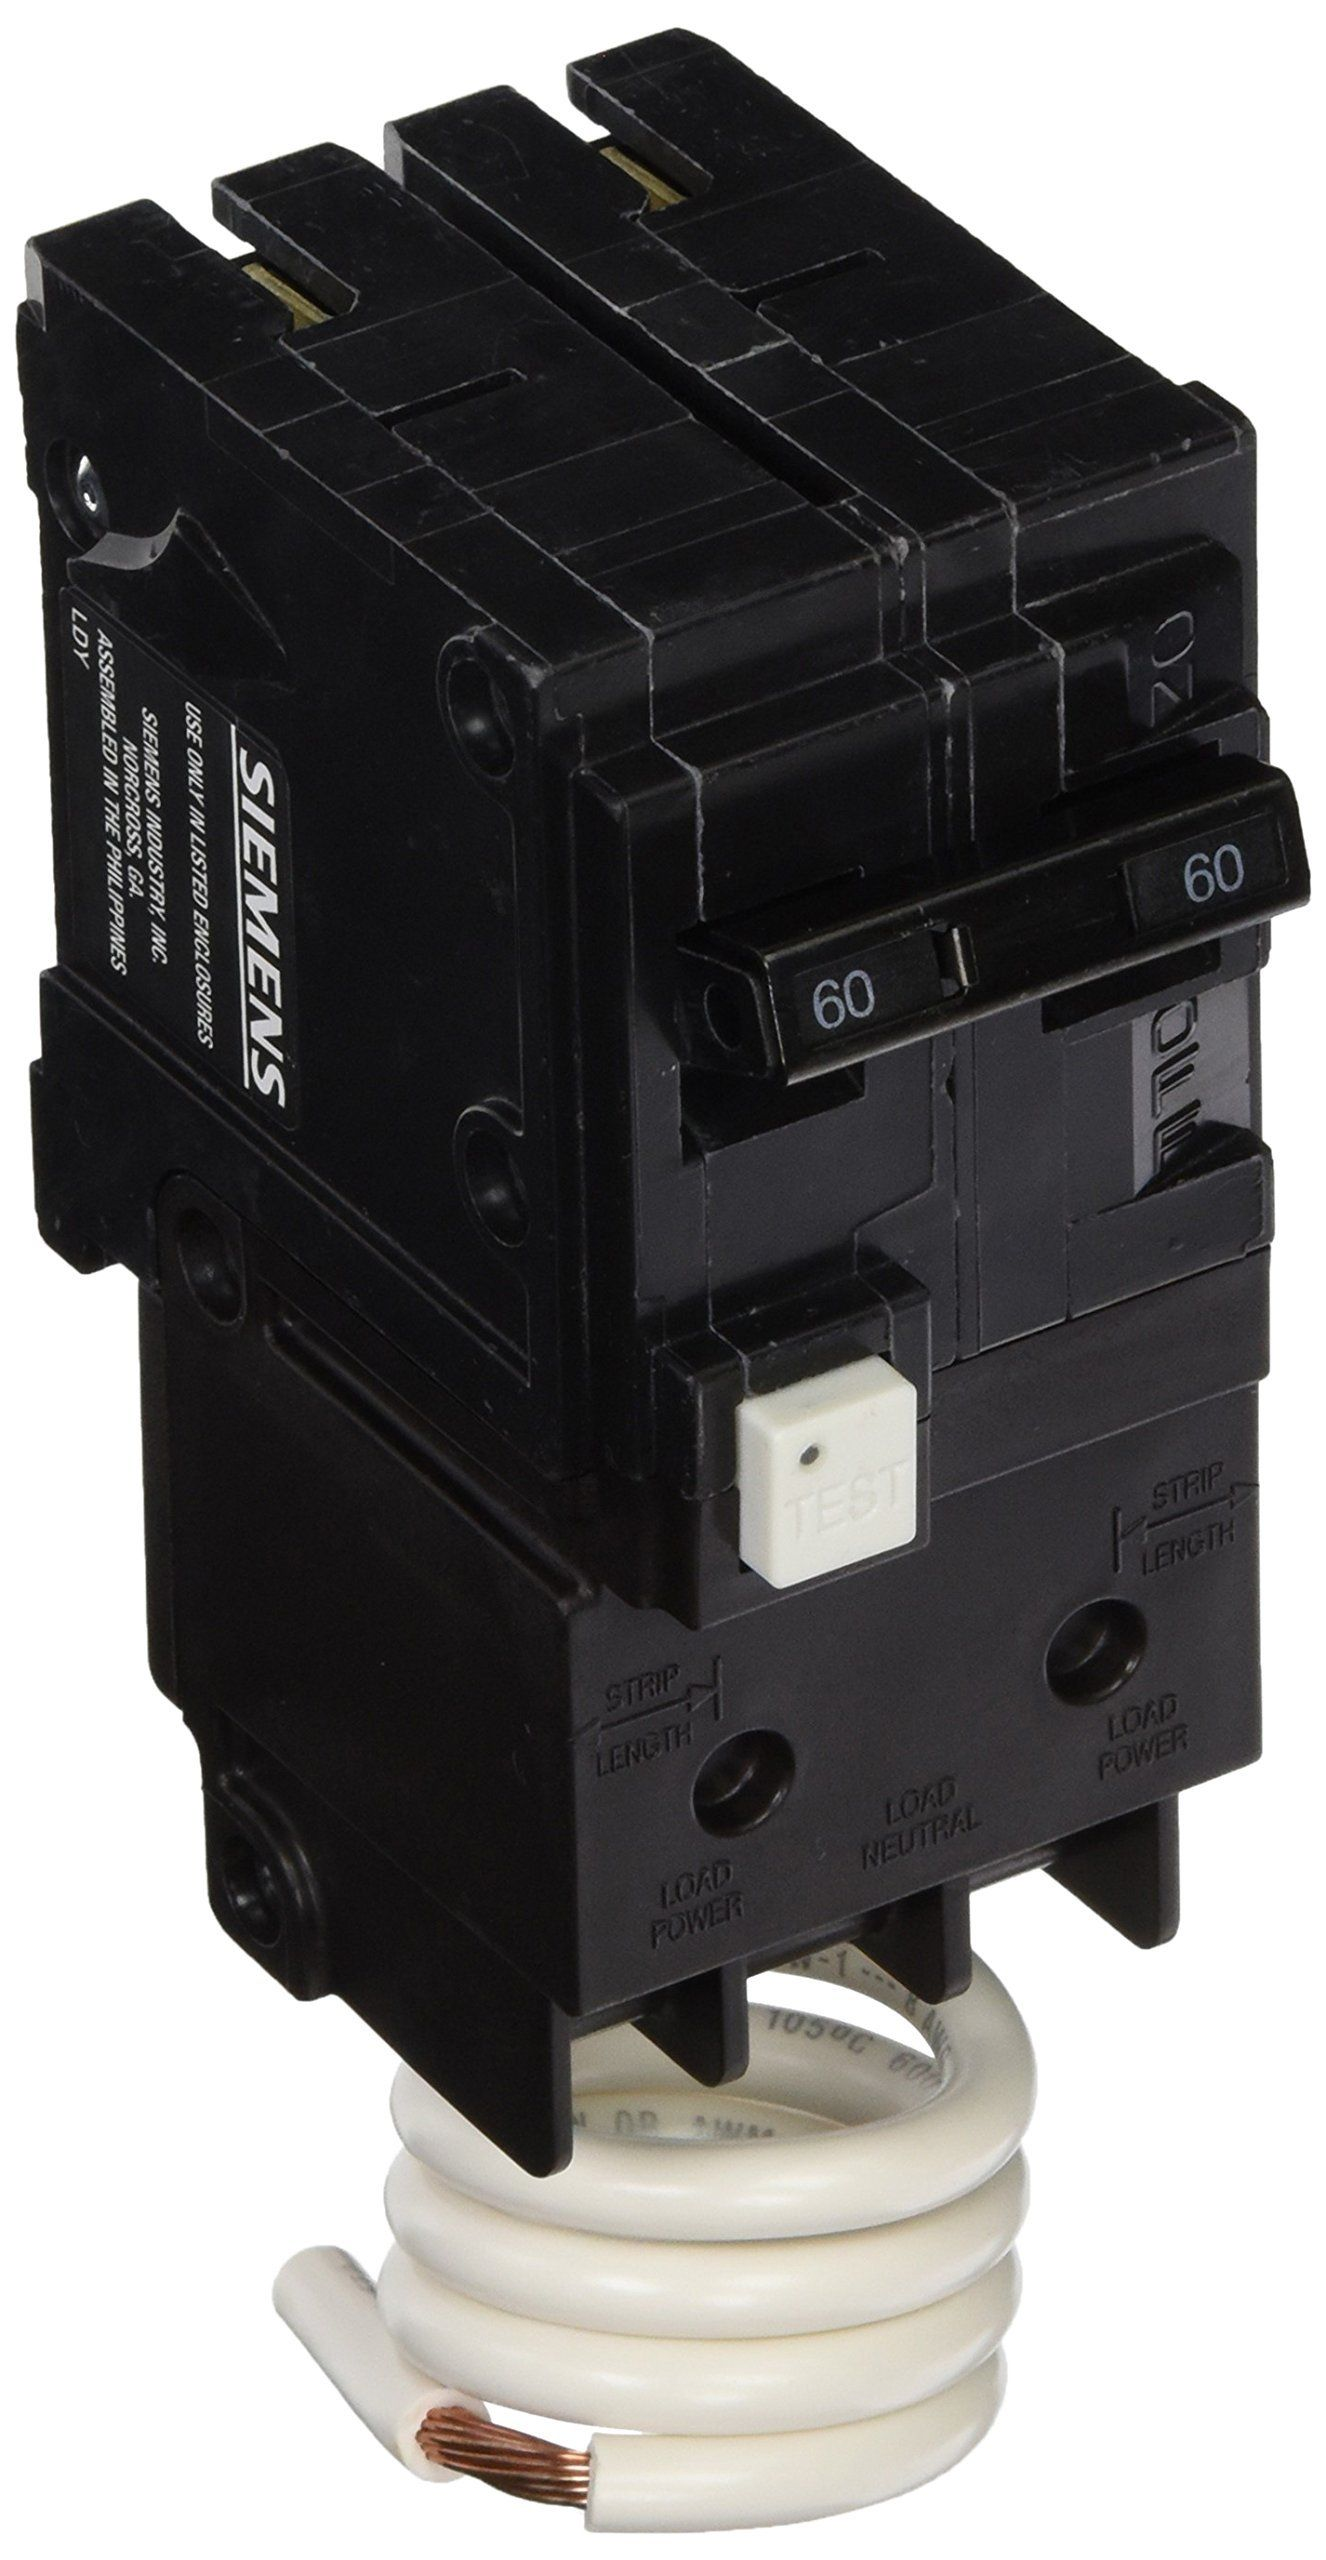 Siemens Qf260a 60 Amp 2 Pole 120 240v Ground Fault Circuit Interrupter With Self Test And Lockout Feature To View Siemens Lockout Construction Applications